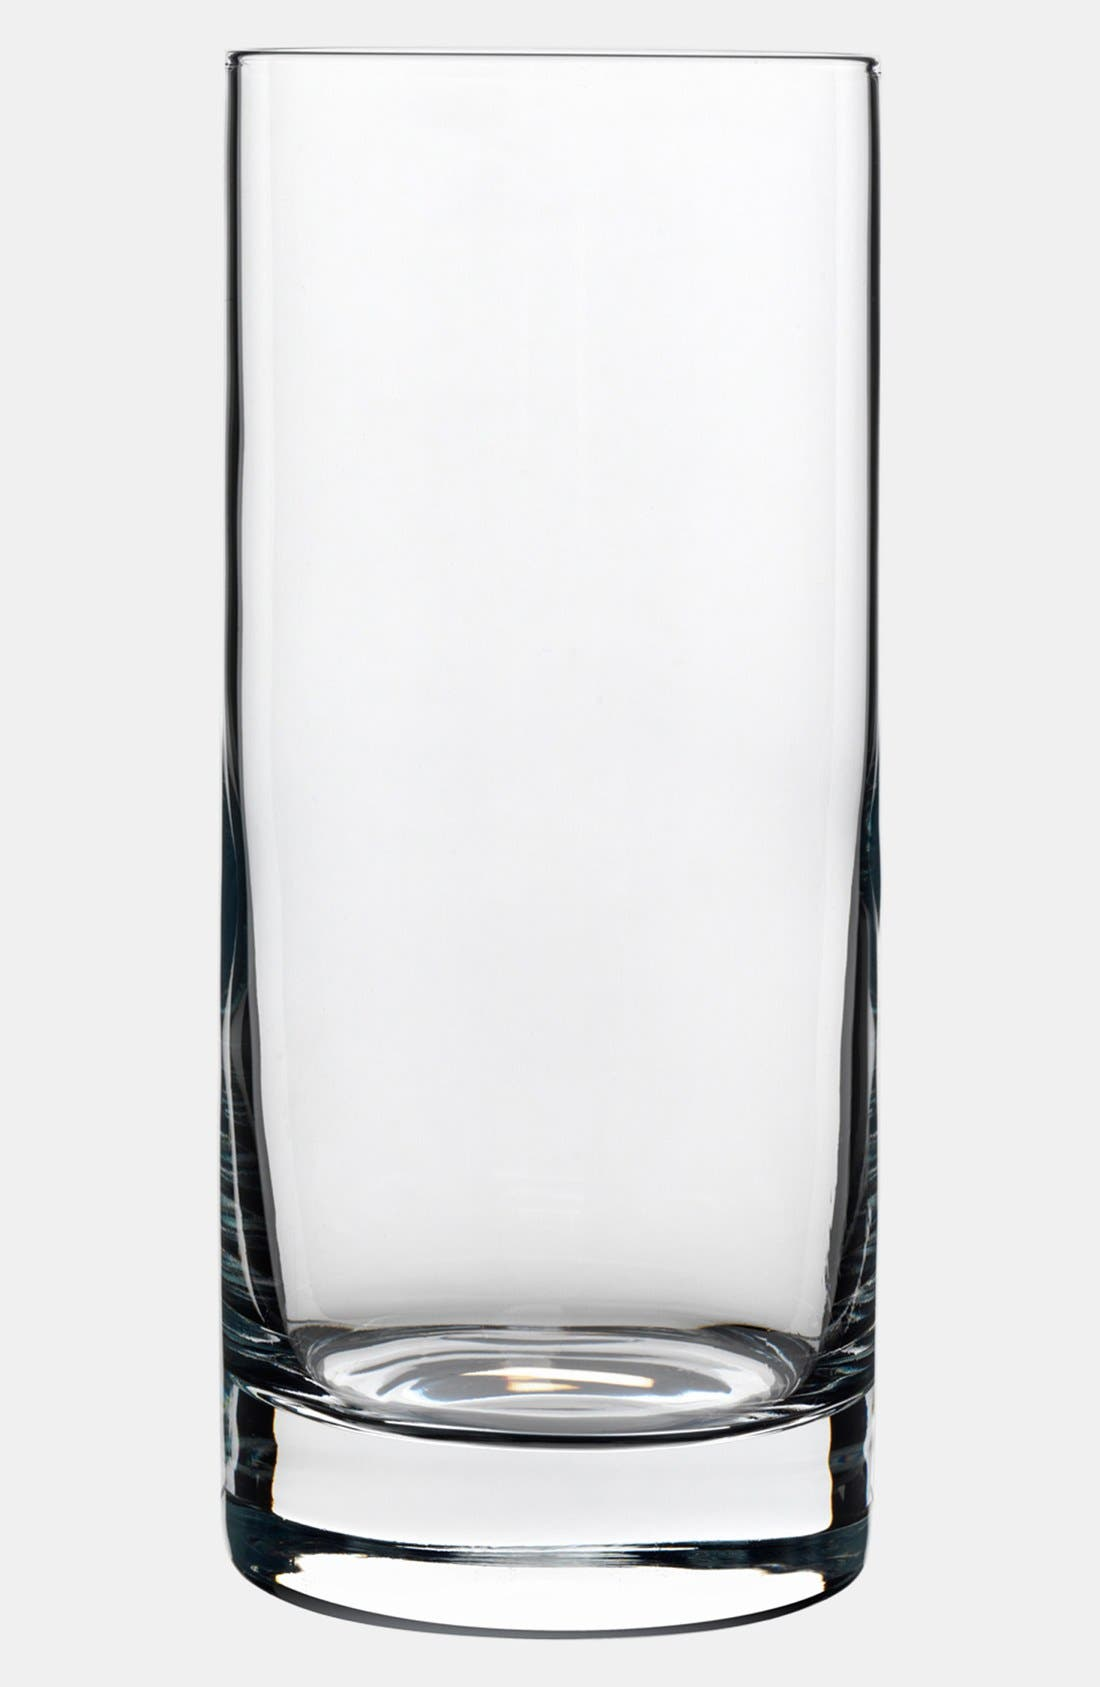 Luigi Bormioli 'Classico' Tall Tumblers (Set of 4)